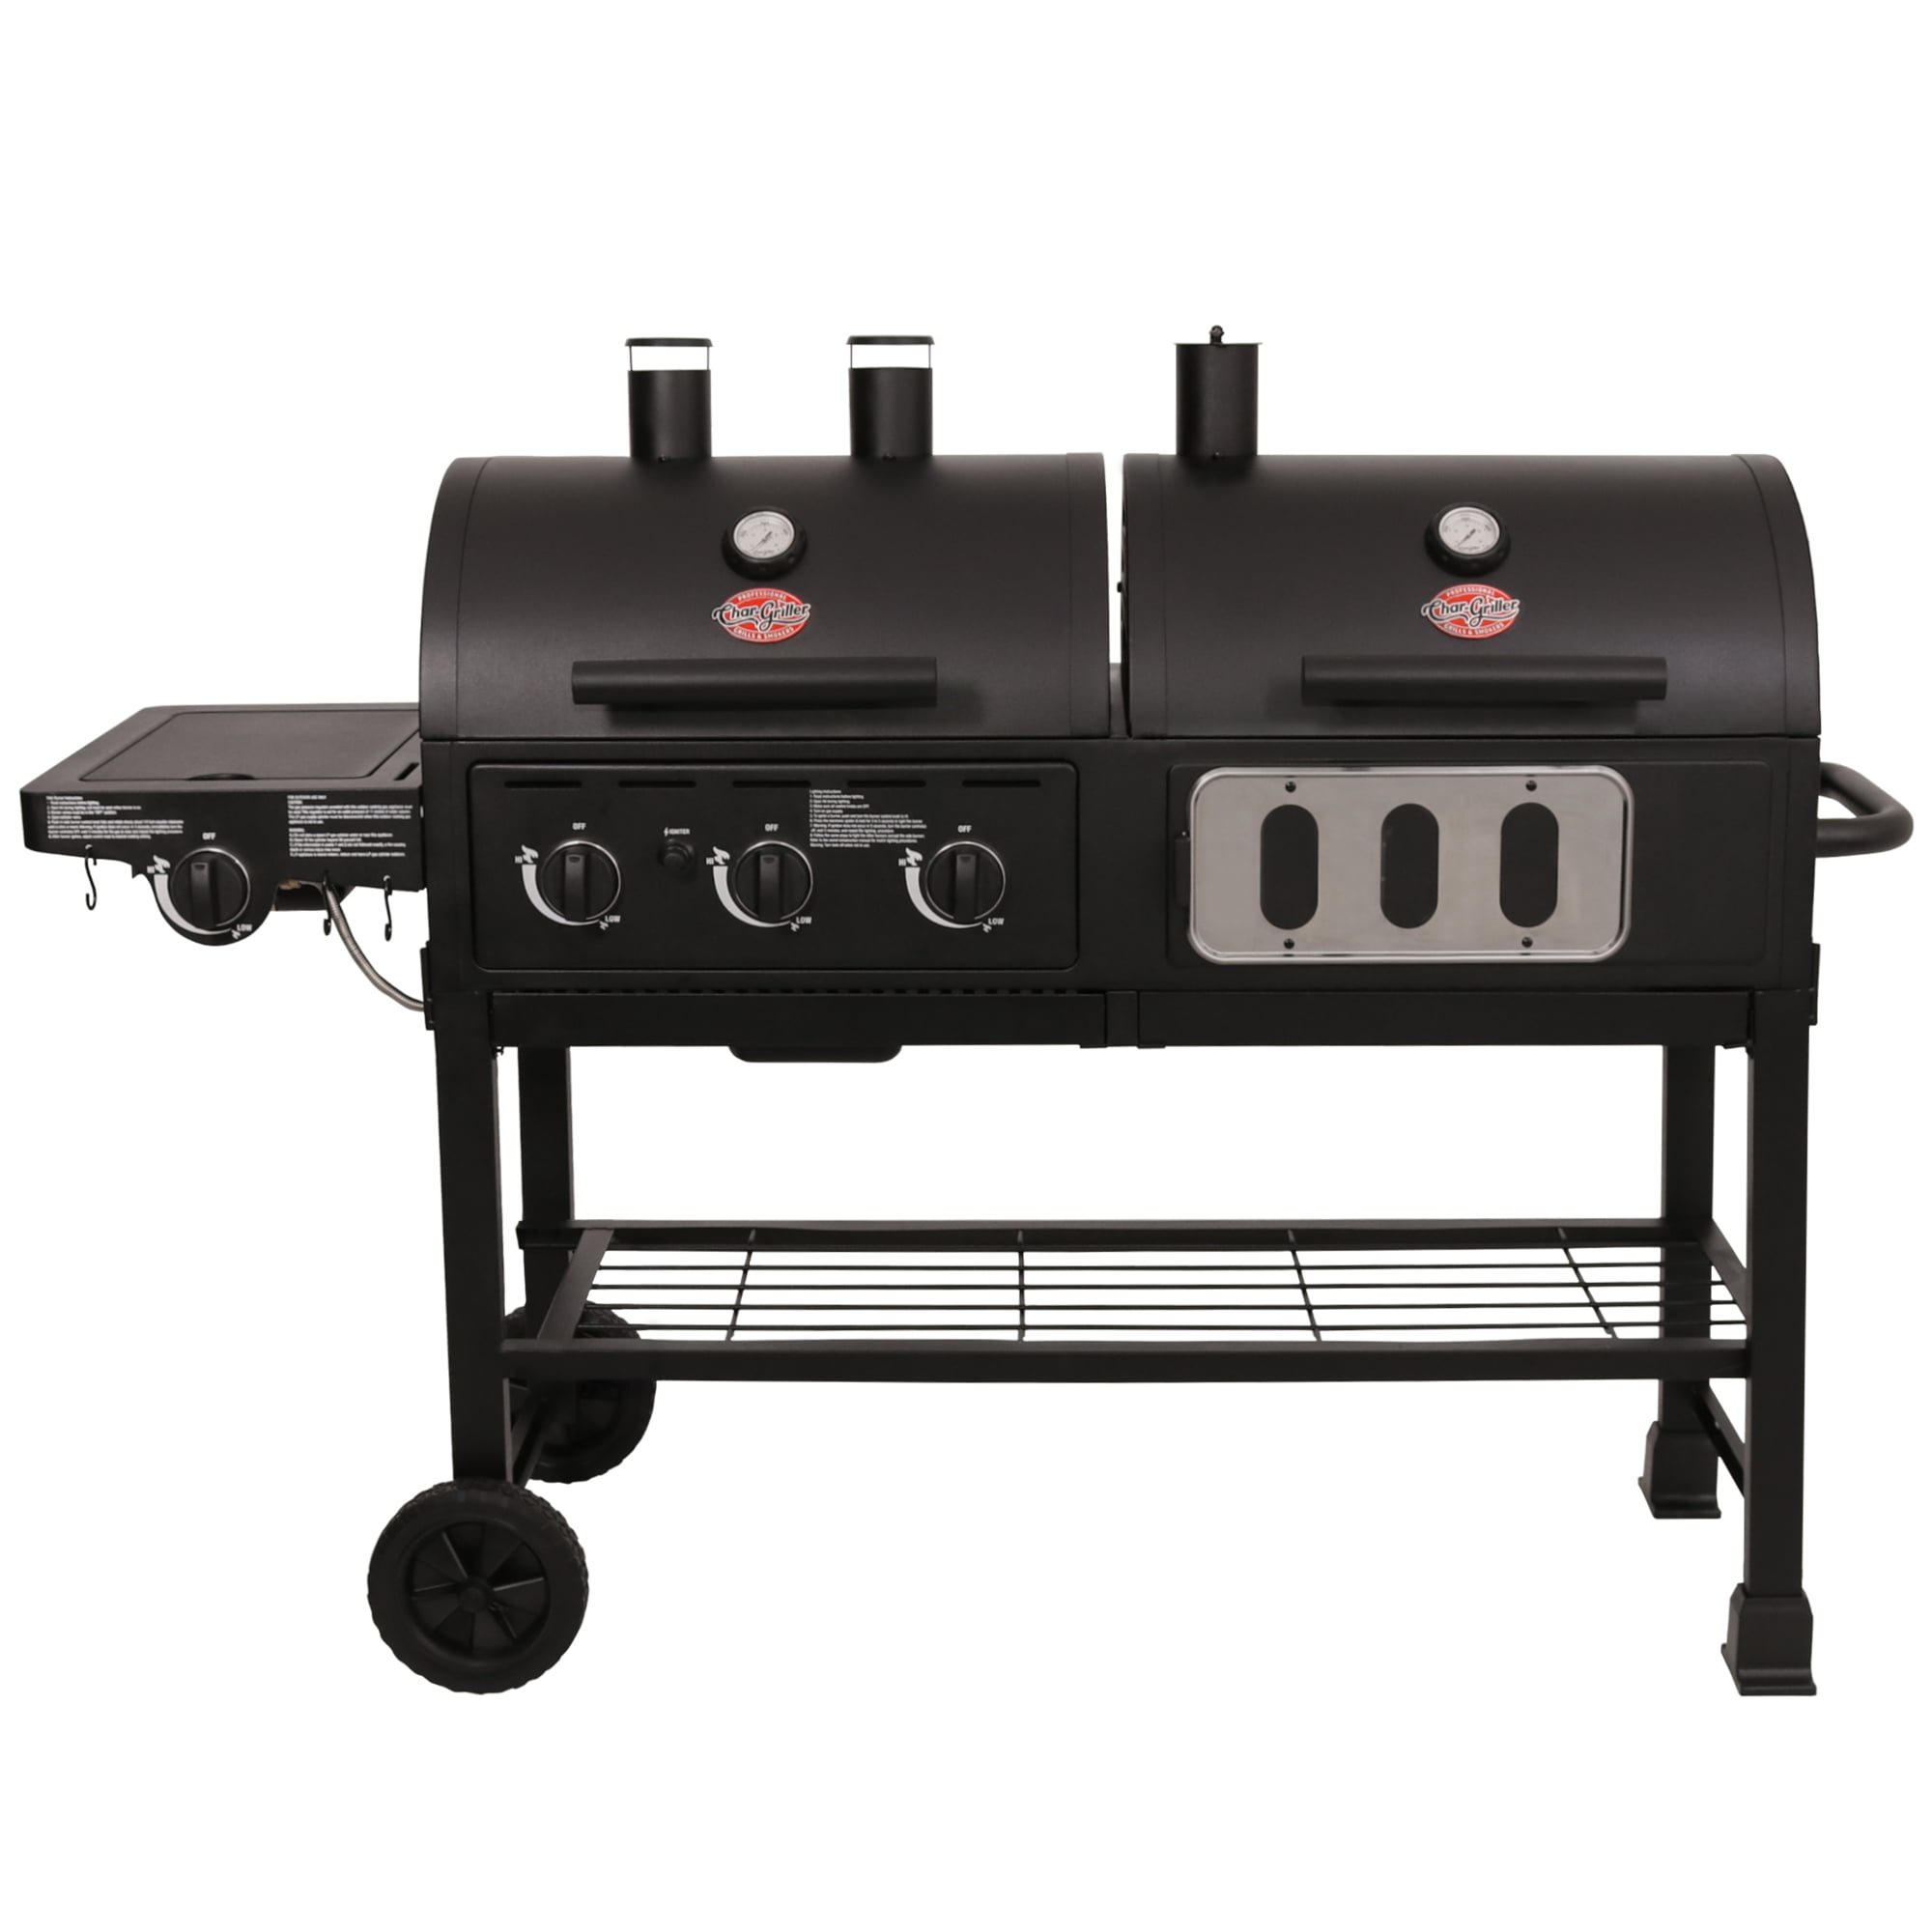 Char-Griller 5750 Hybrid Gas & Charcoal Grill